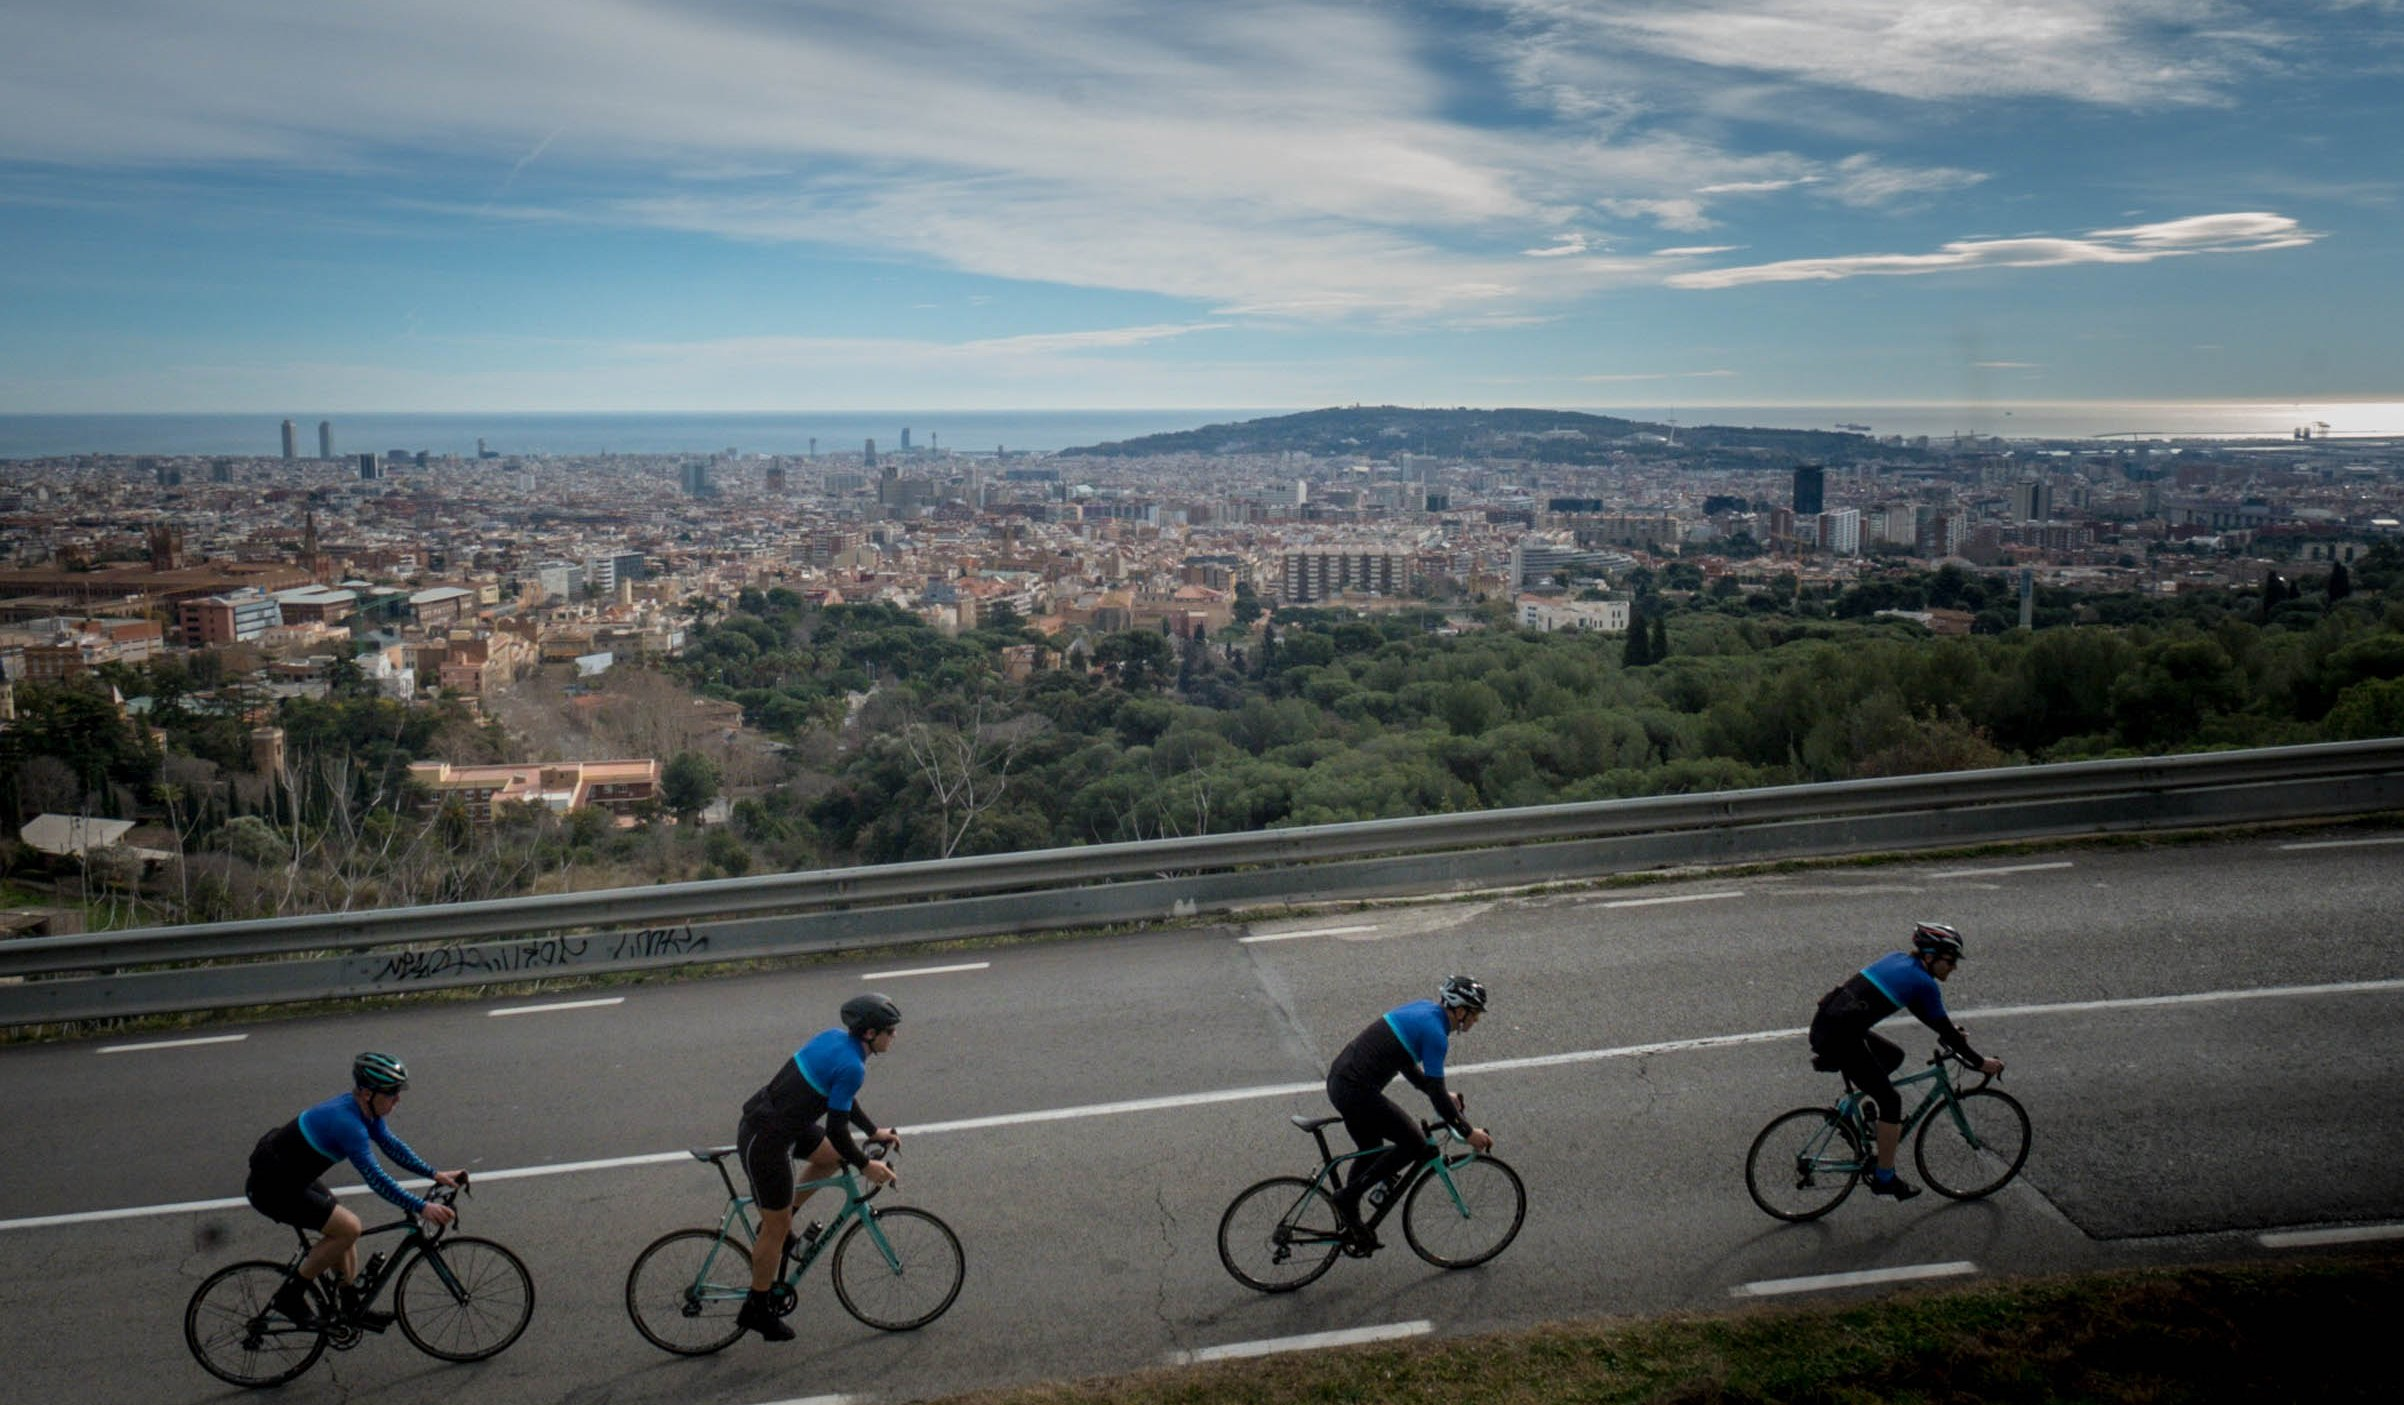 RIDE with us - Discover our day trips to enjoy Barcelona roads on our guided or self-guided tours.